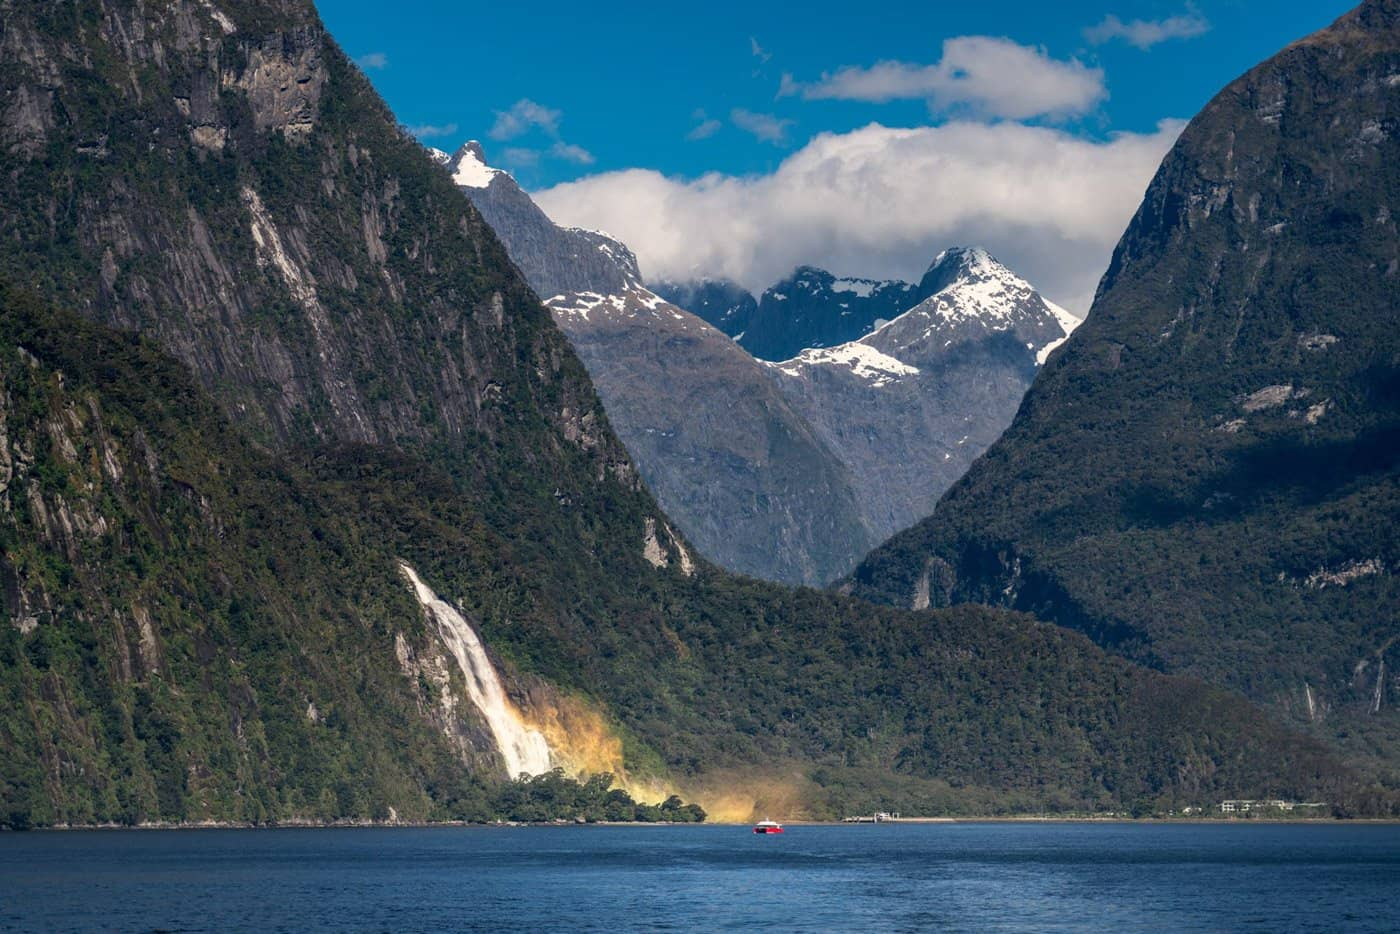 Cruising around the Milford Sound is one of the most unforgettable experiences of our time in New Zealand's South Island.